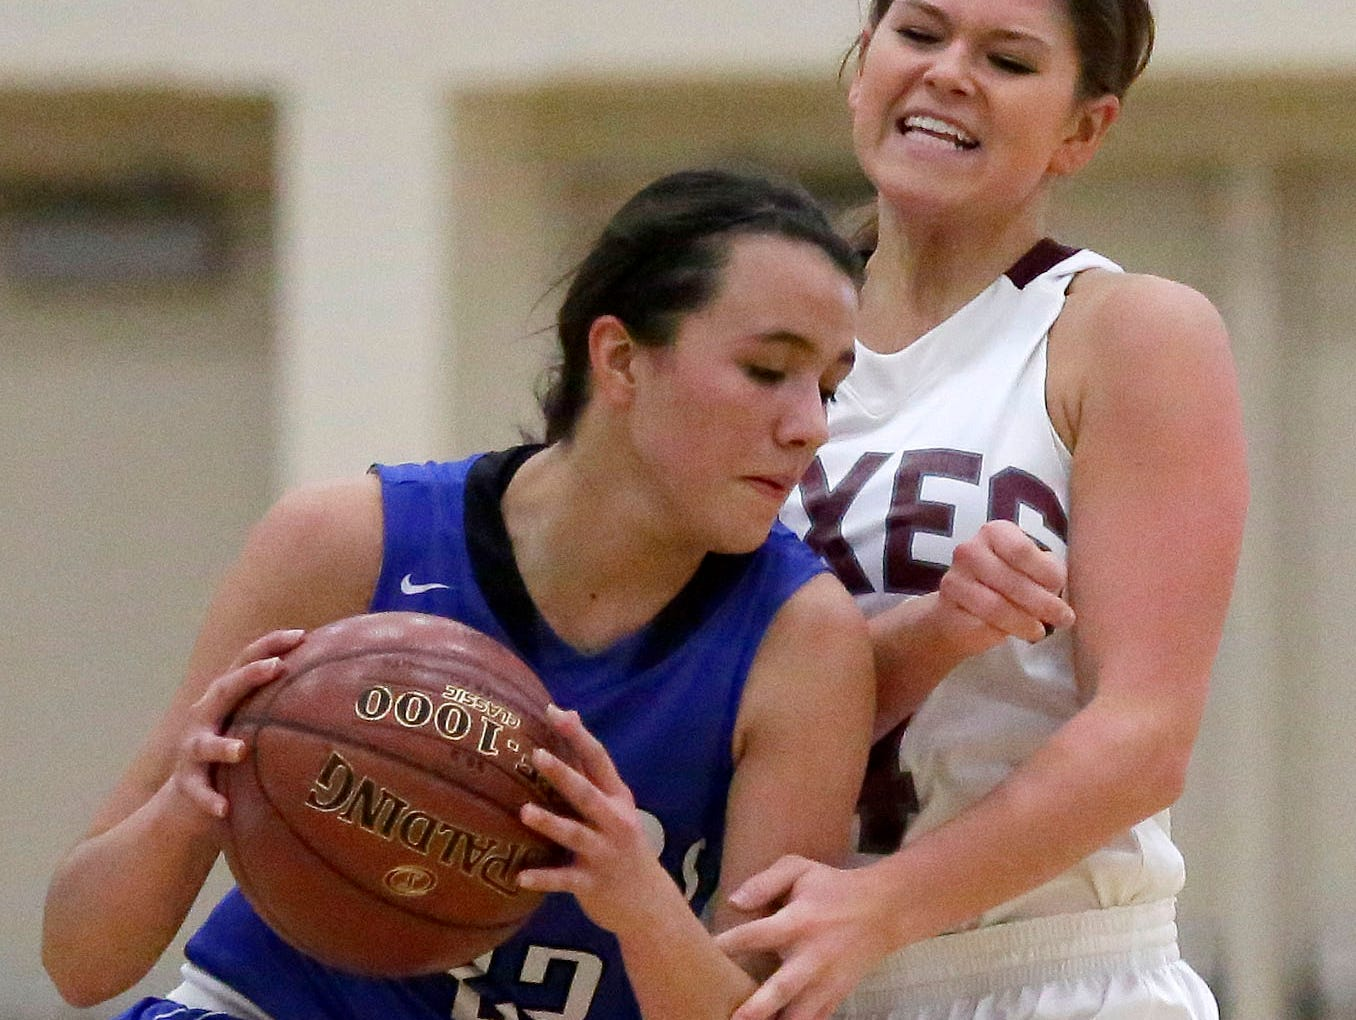 Whitney Henn of Fox Valley Lutheran defends against Kailee Van Zeeland of Wrightstown in a North Eastern Conference girls basketball game on Tuesday.